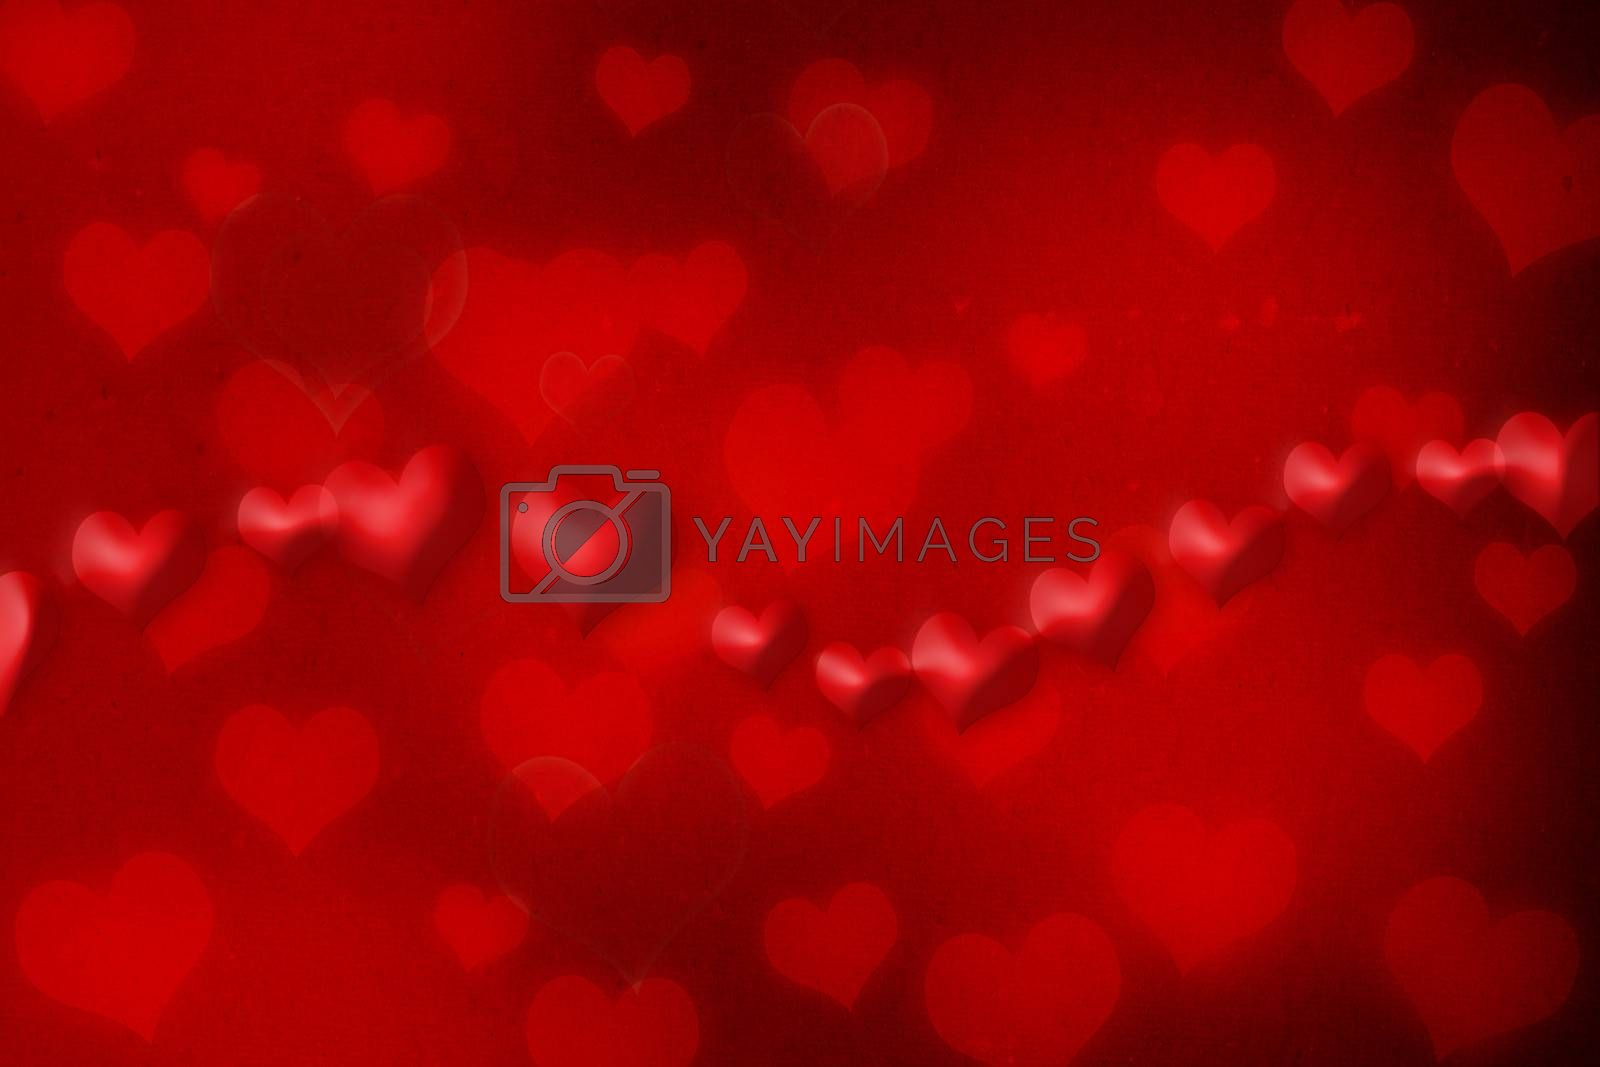 Royalty free image of Red hearts by melpomene